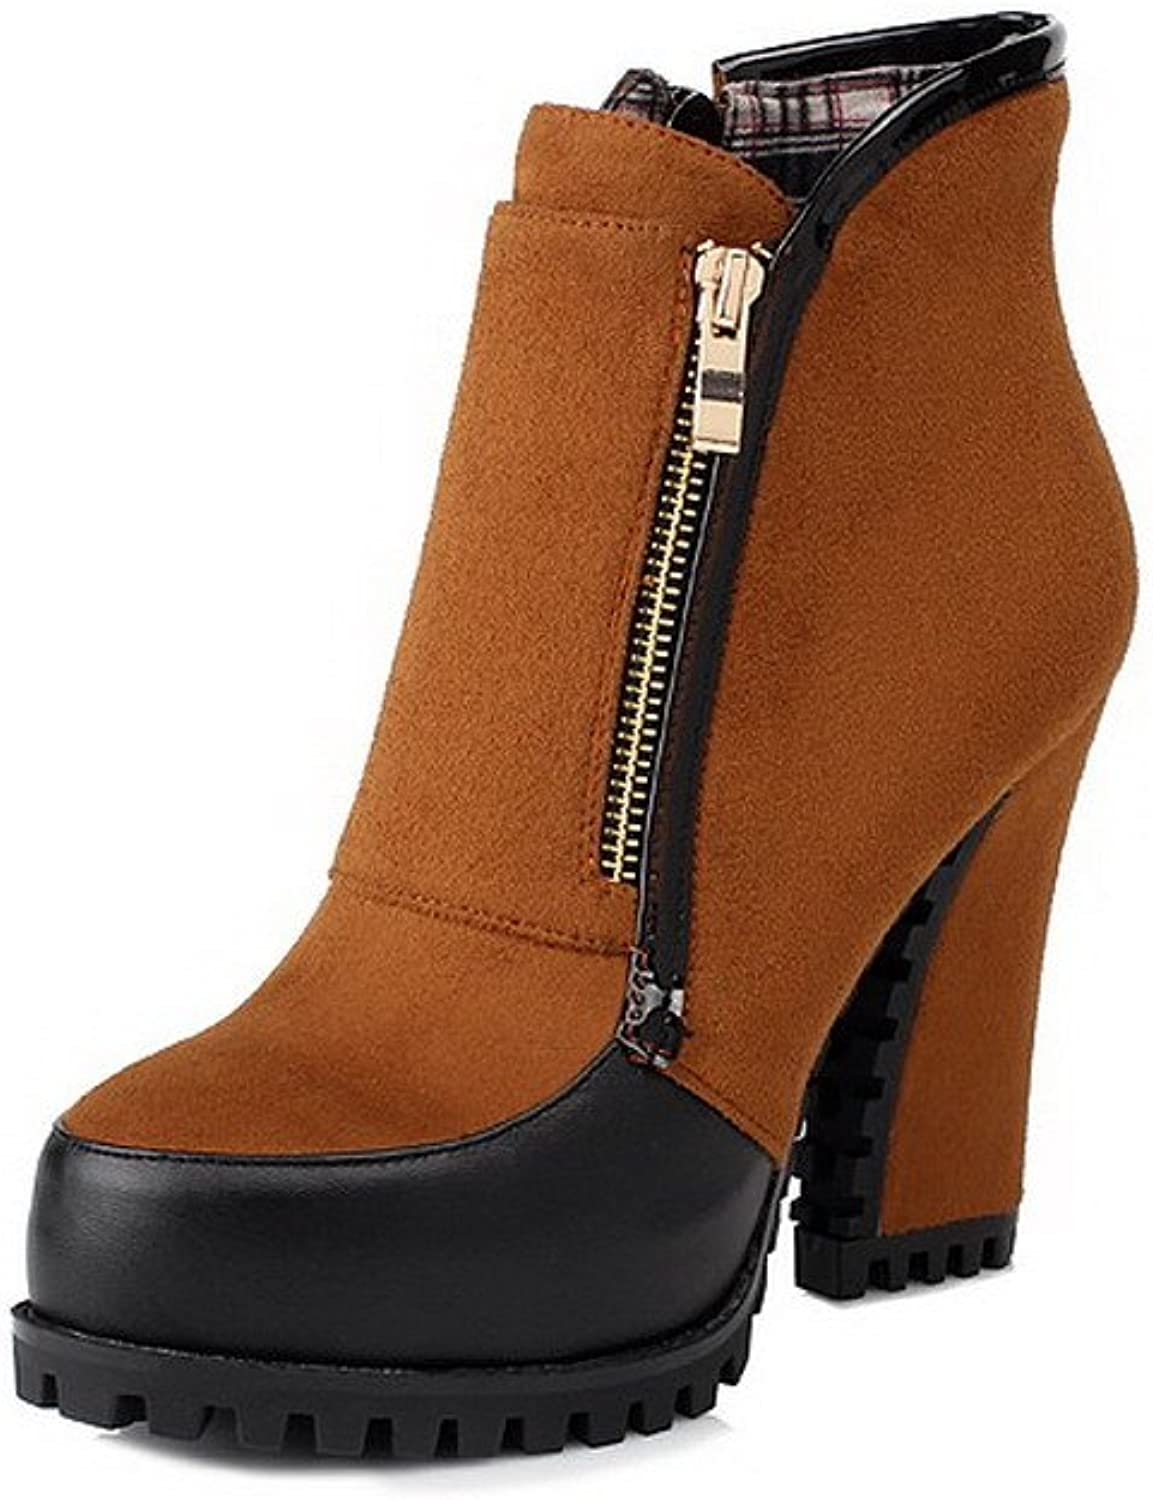 WeenFashion Women's Frosting Soft Upper Leather colorant Match High Chunky Heels Ankle Boots with Zippers